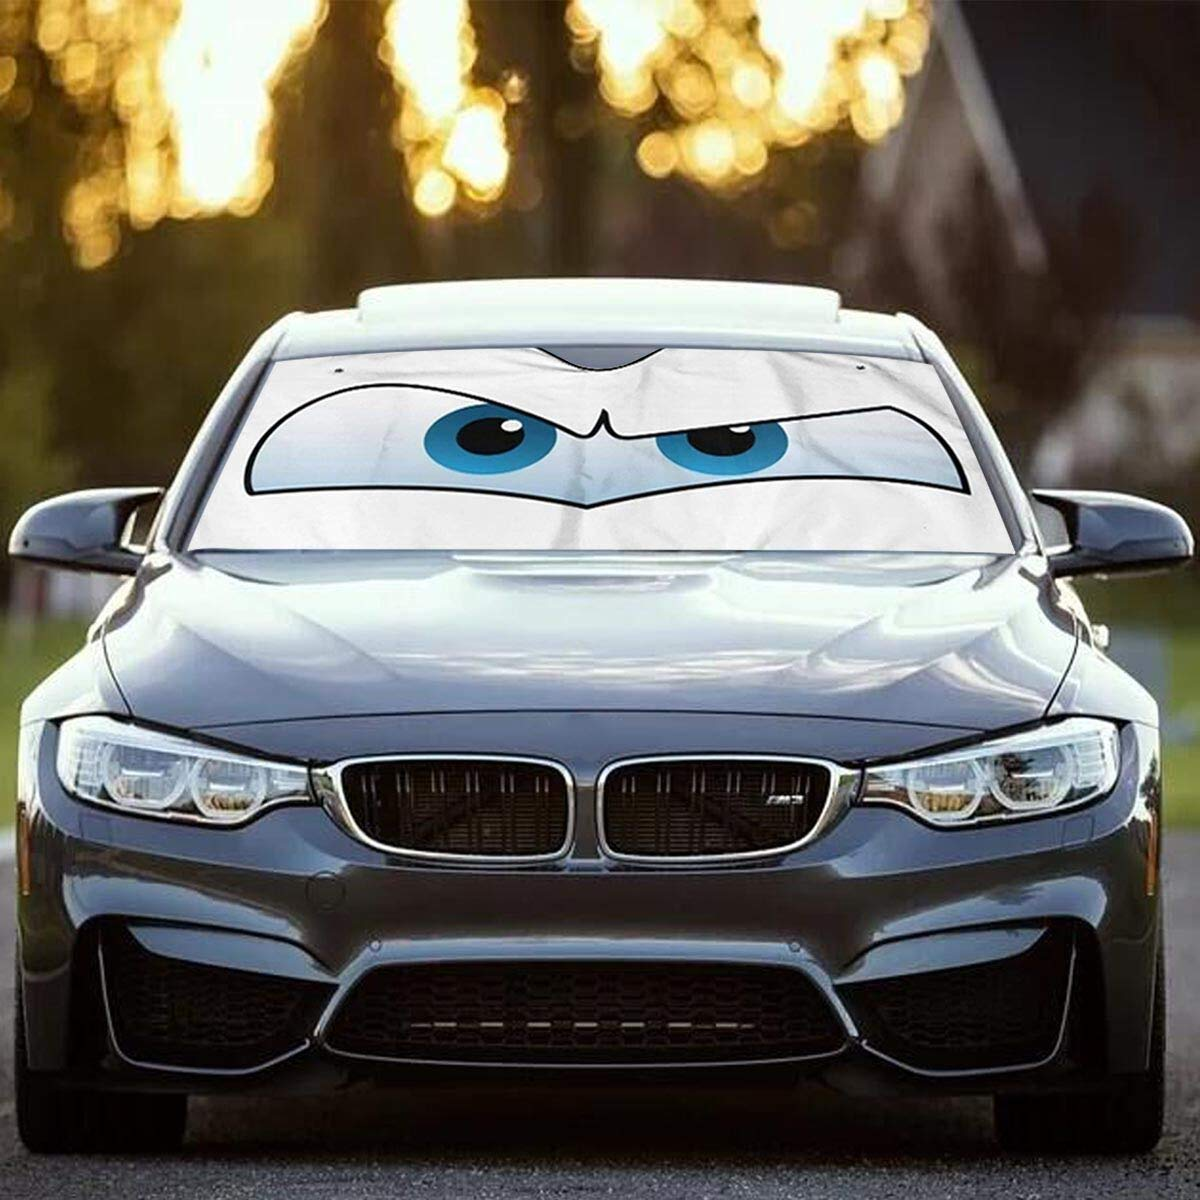 Car Sun Shade Windshield Cute Cartoon Eyes Sunshade, Portable Universal Car Sun Shade